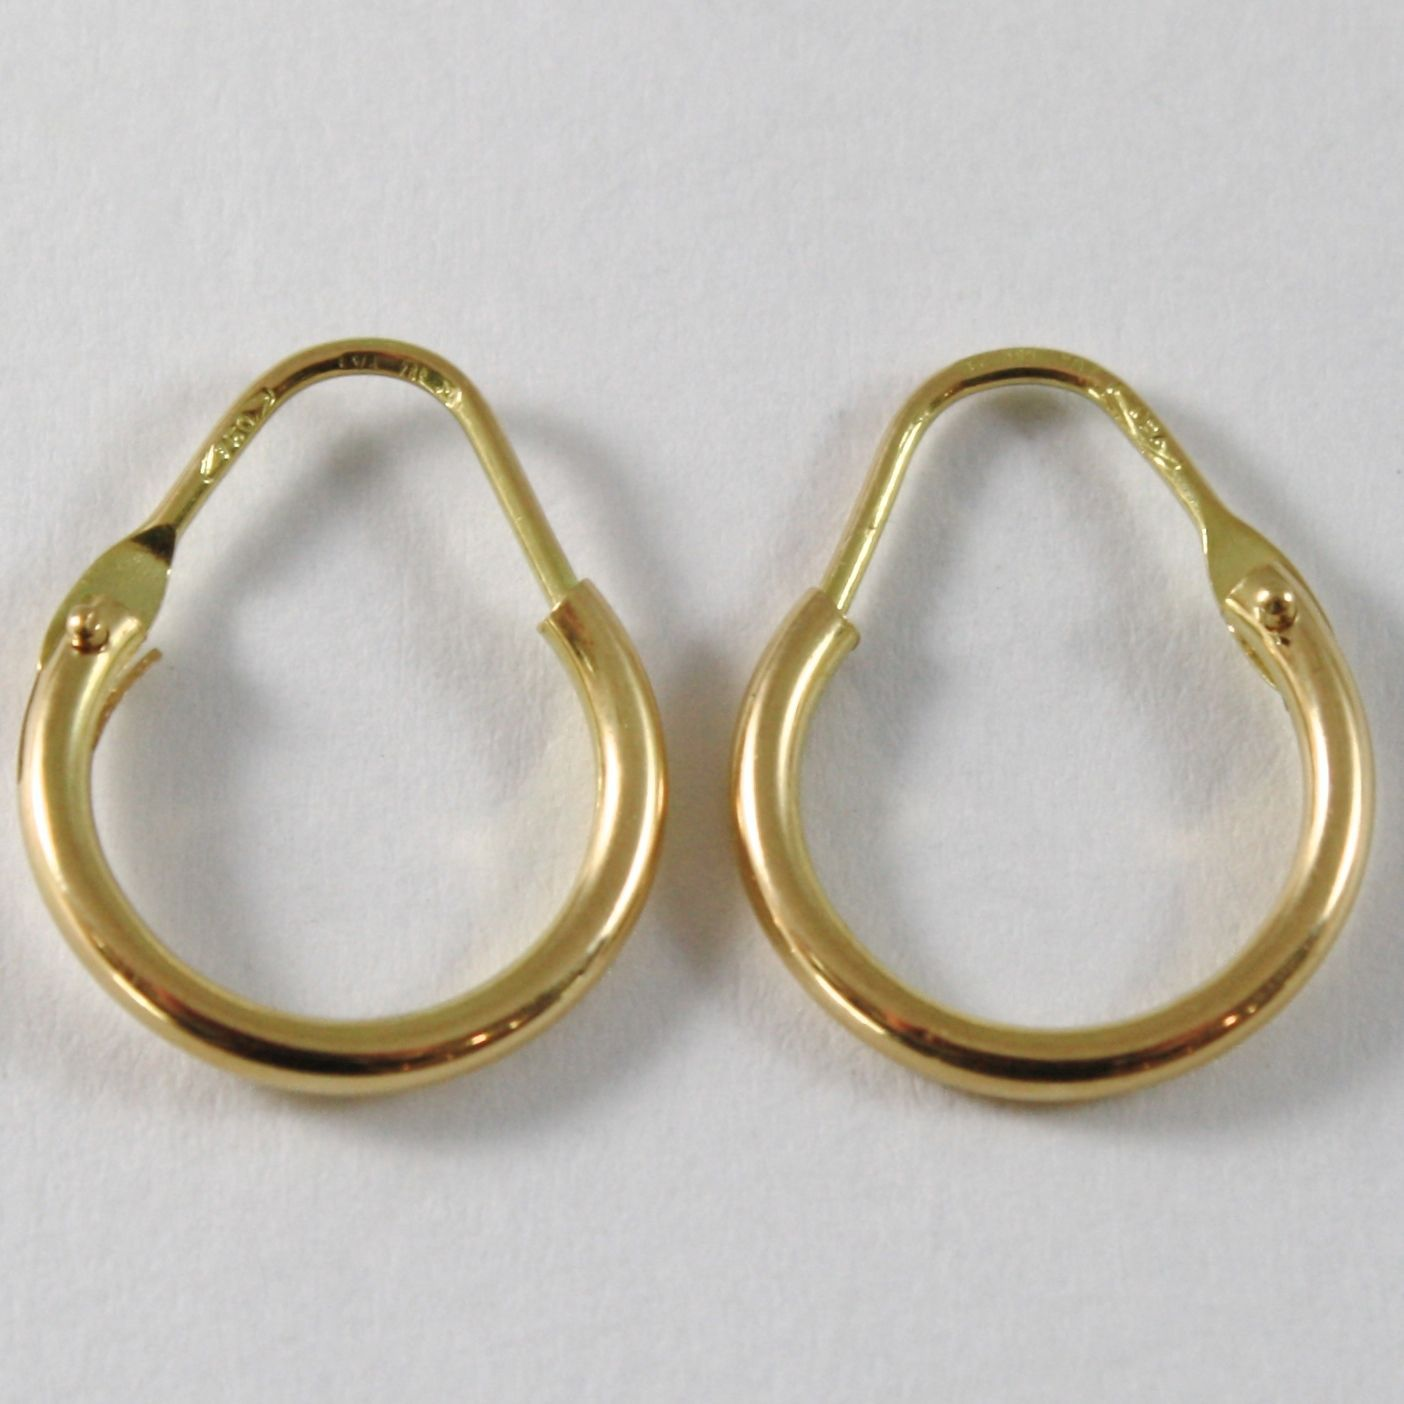 18K YELLOW GOLD ROUND CIRCLE EARRINGS DIAMETER 10 MM WIDTH 1.7 MM, MADE IN ITALY